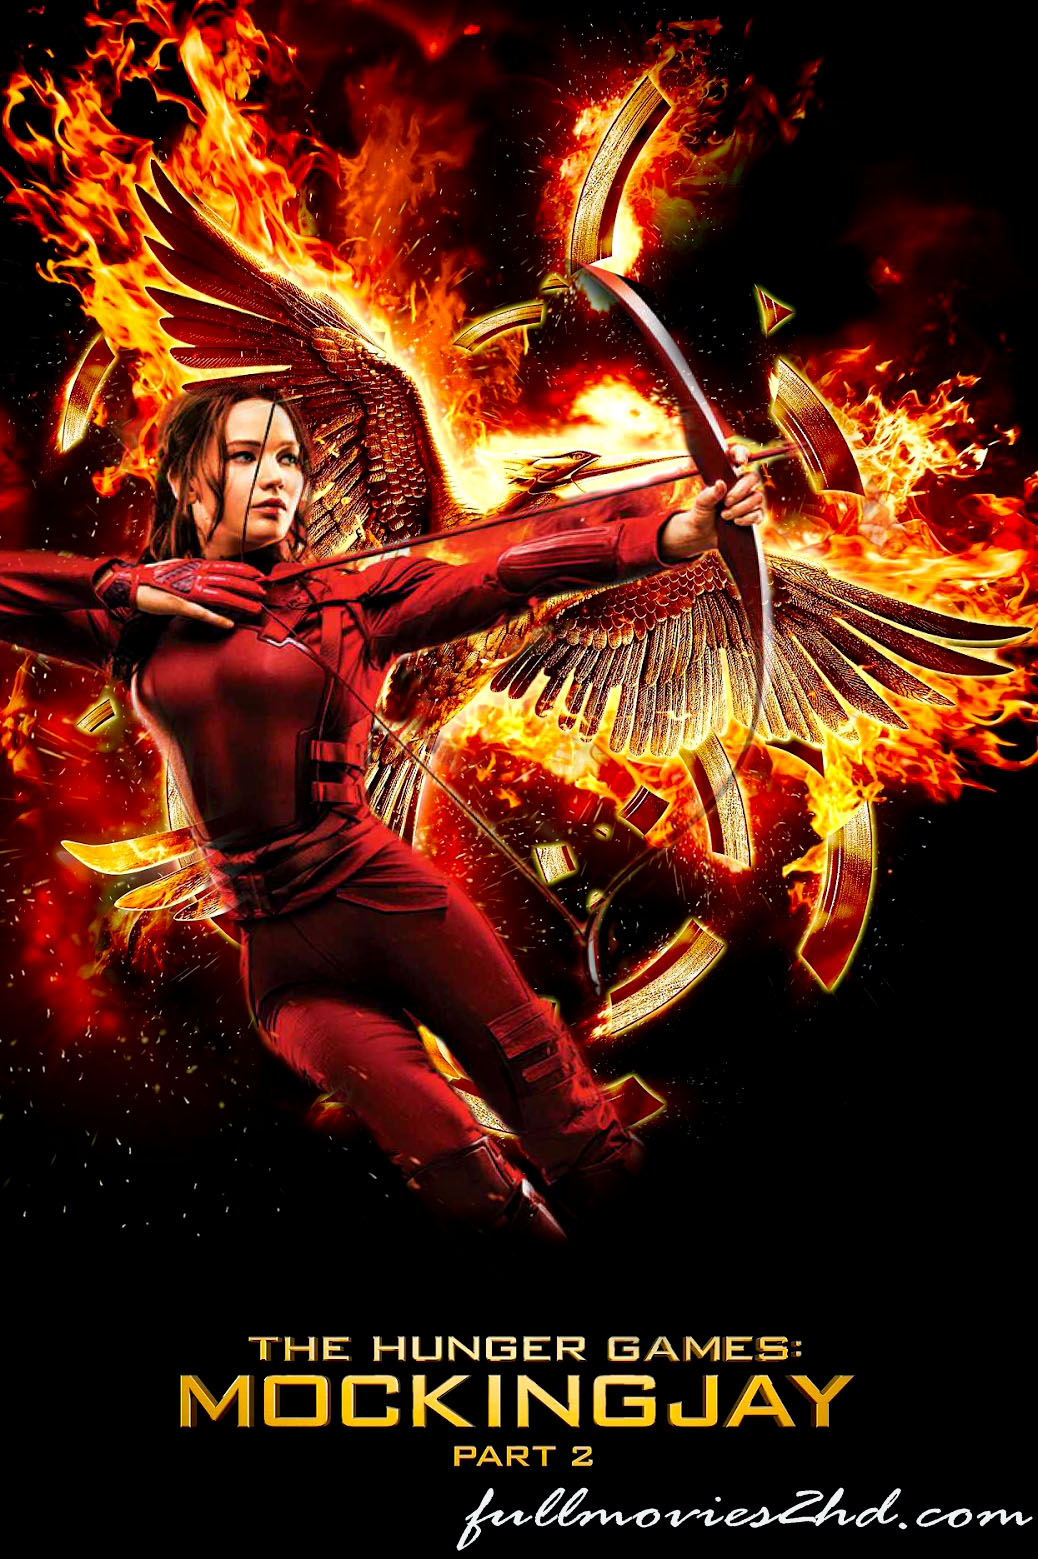 Where can I download The Hunger Games movie online? - Quora